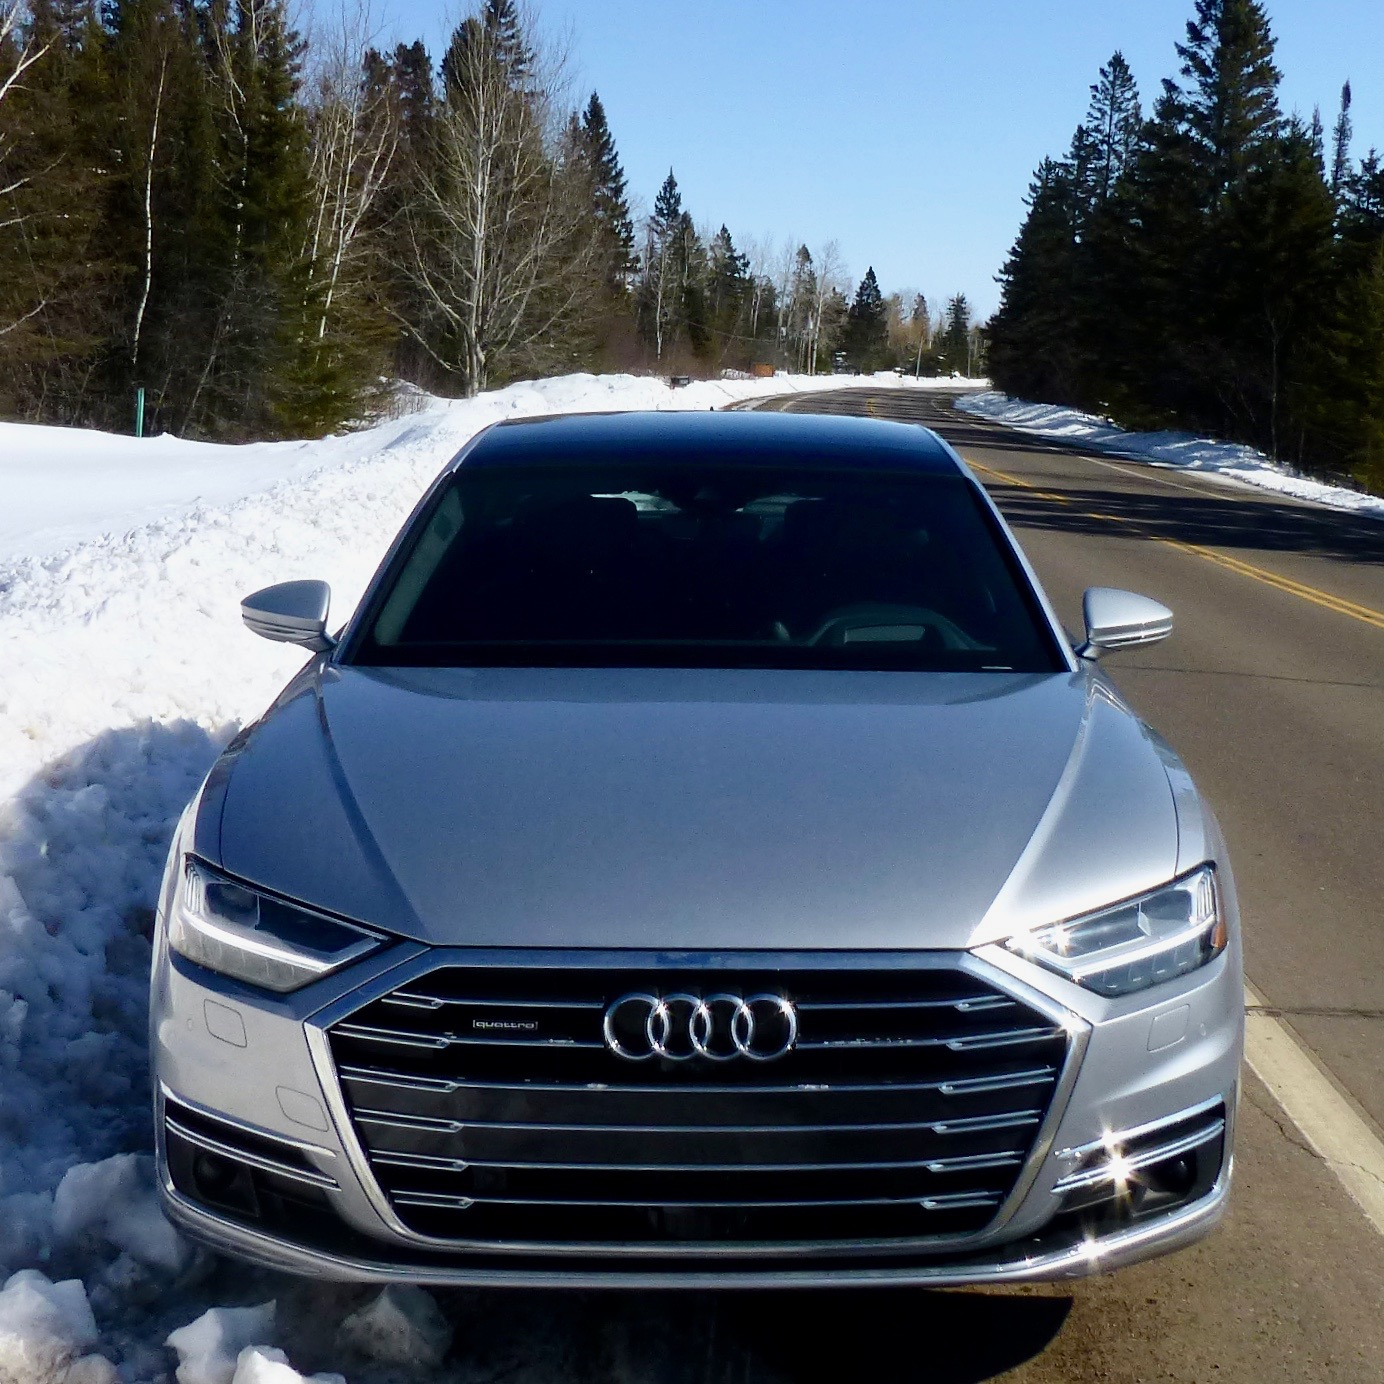 The style, and price tag, leaves the A8L fard ahead of Audi's A3, A4, A6, and assorted SUVs.